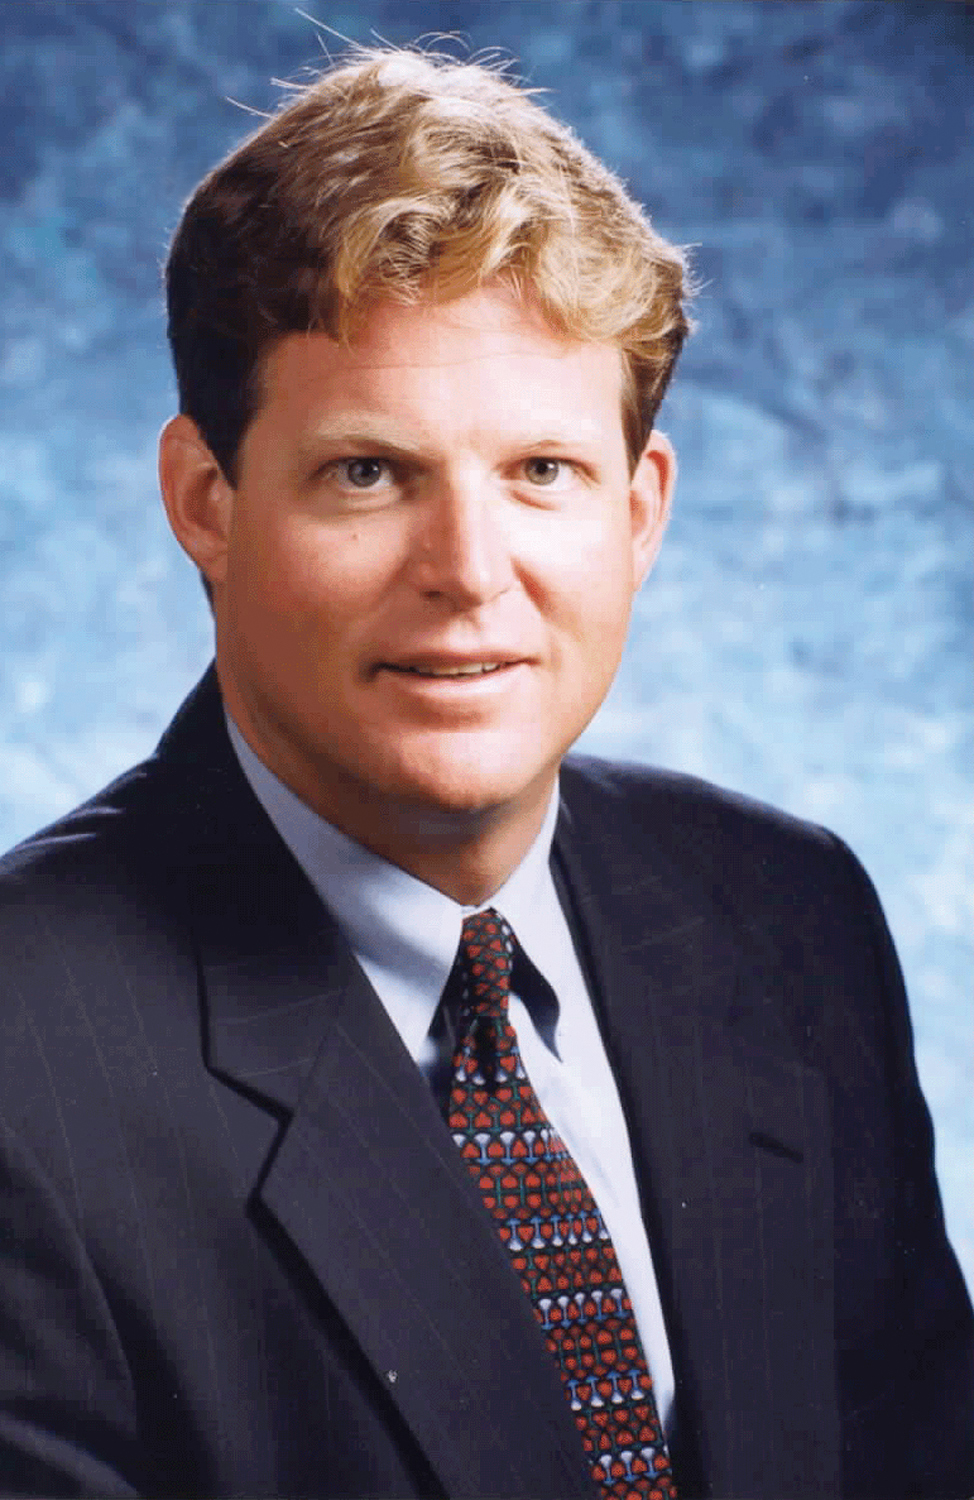 Kennedy t photo high res headshot 2002 ret2 1